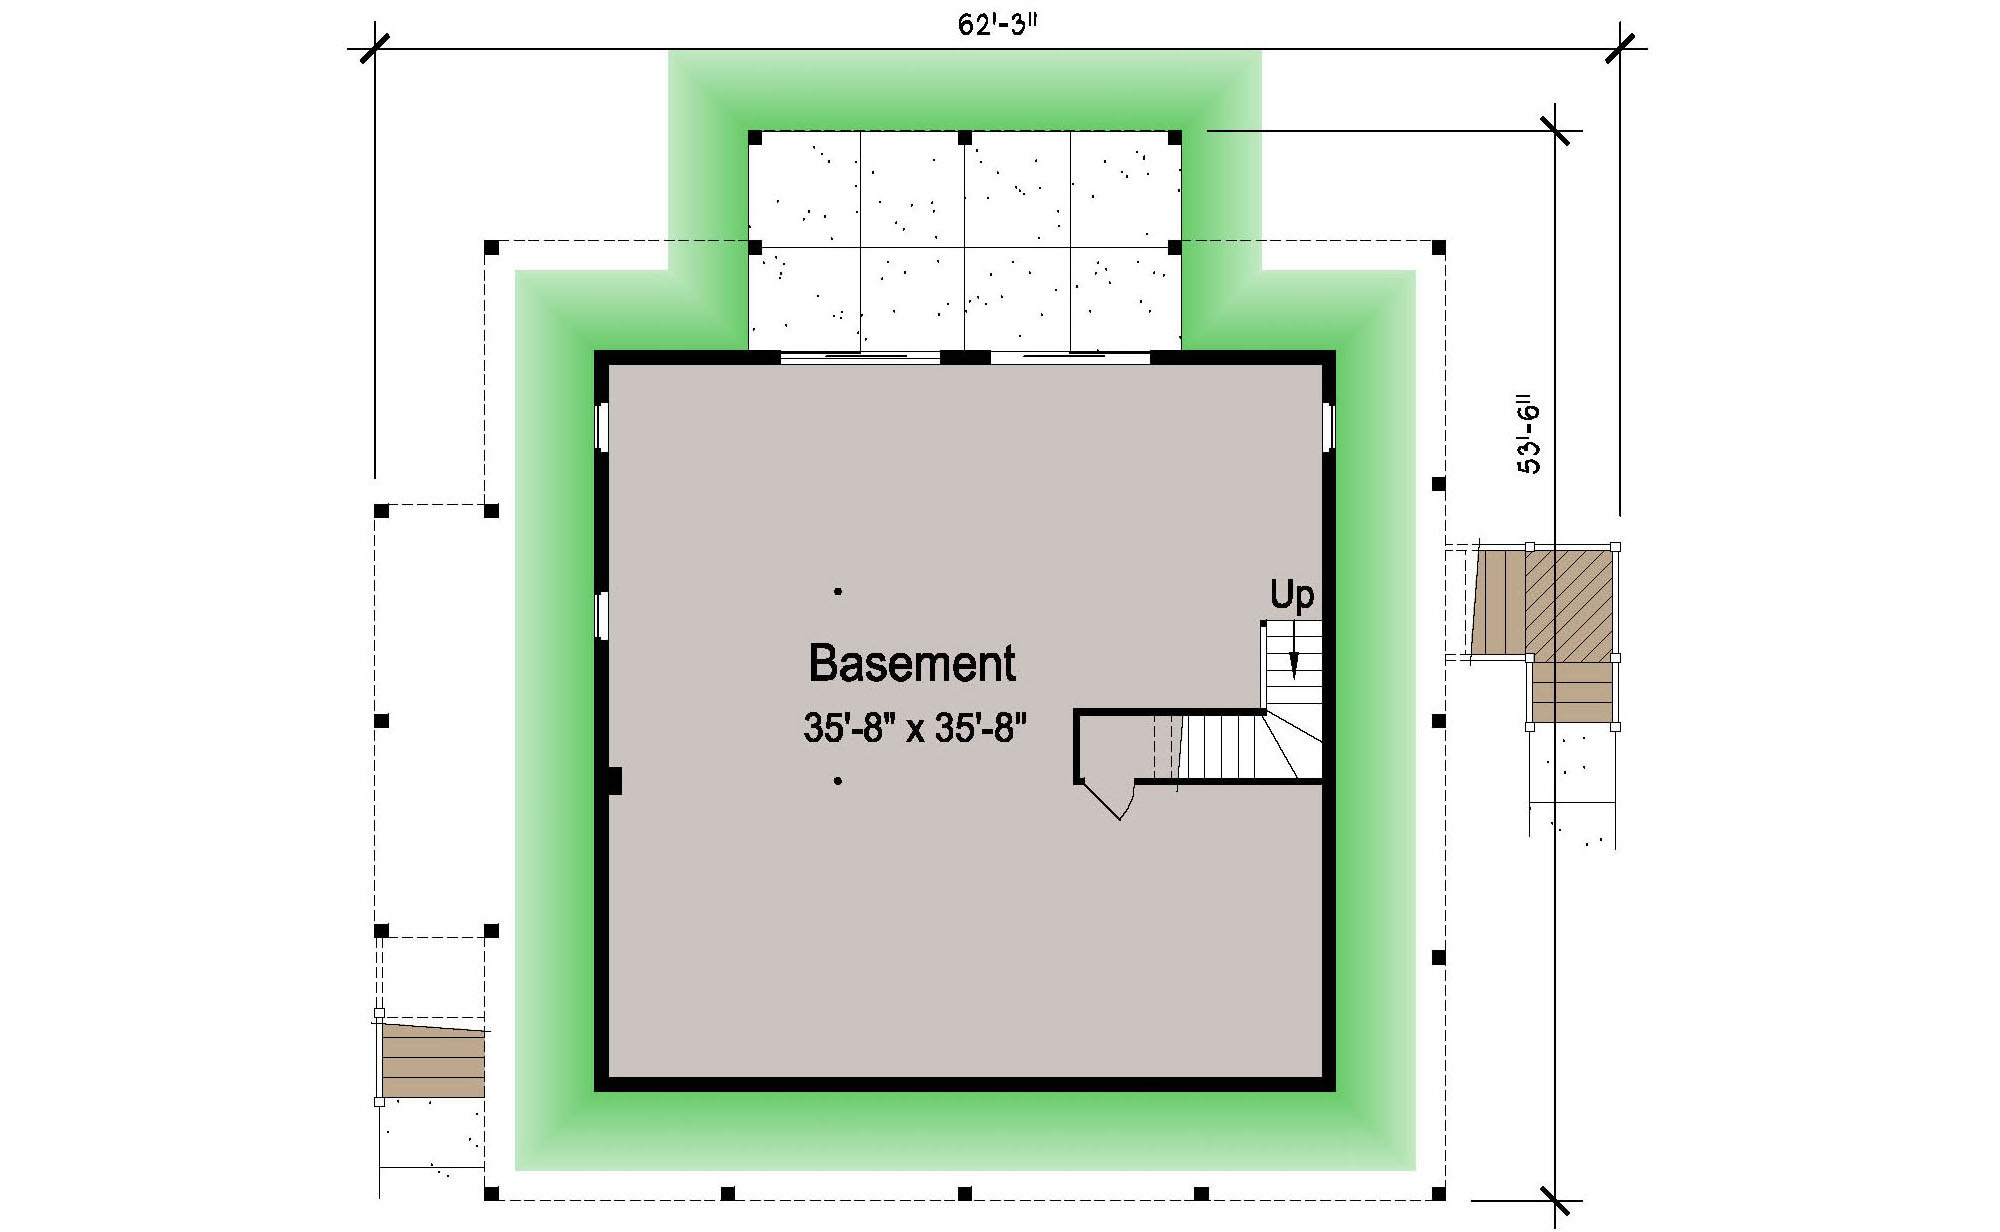 basement foundation design. 007 - Island-2058-Basement 1 Ground Floor Basement Foundation Design O